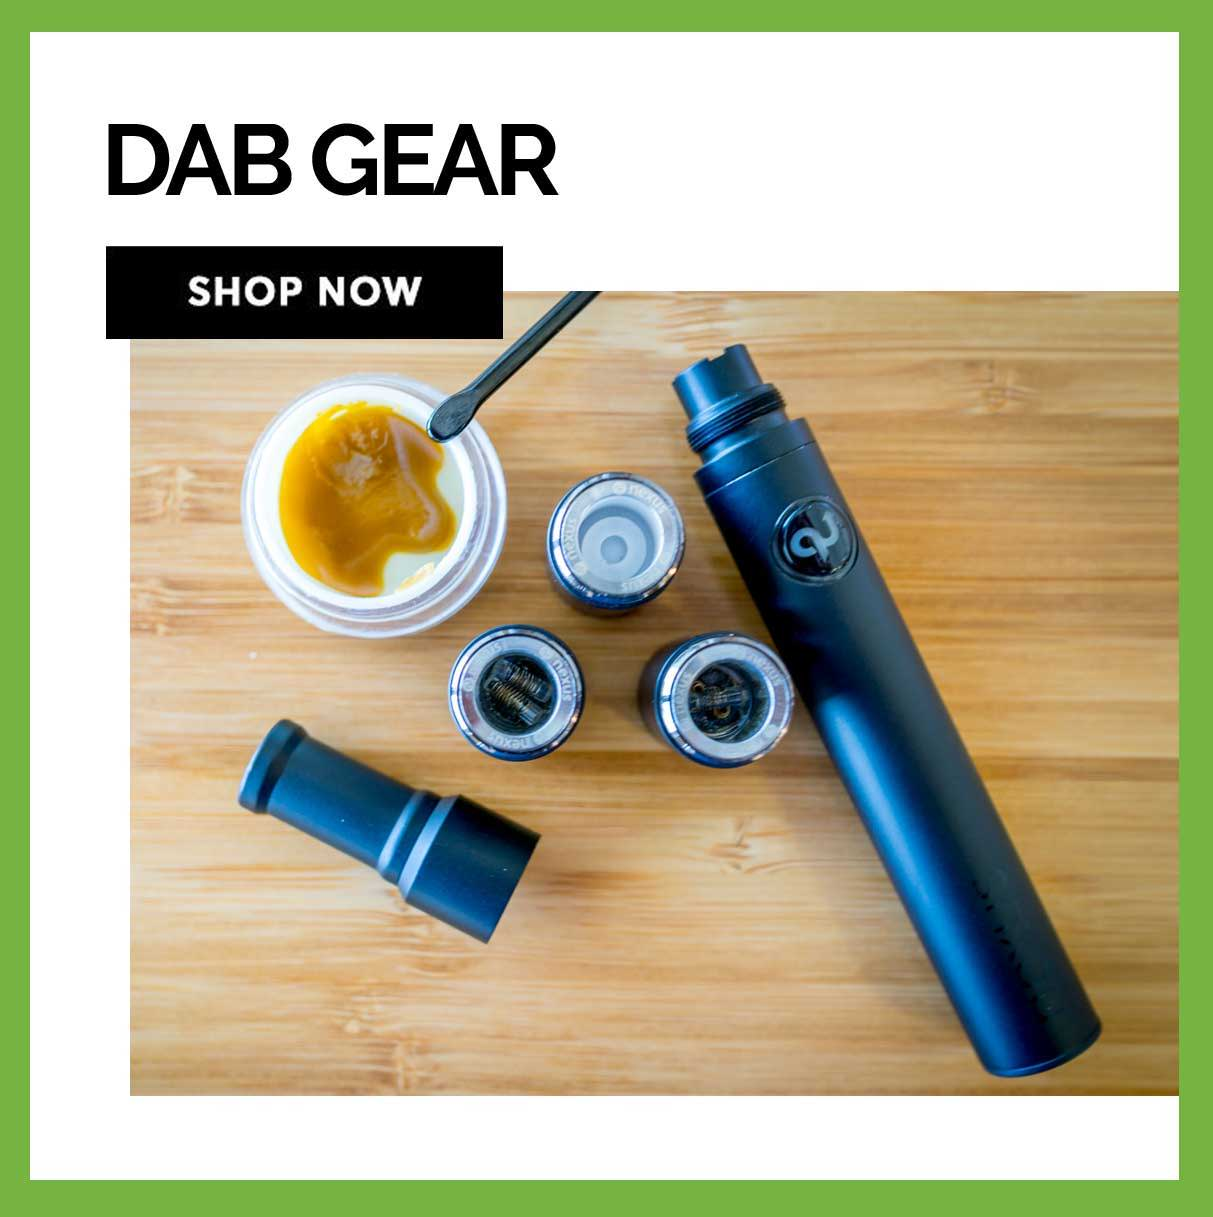 gifts for dabbers and dab lovers